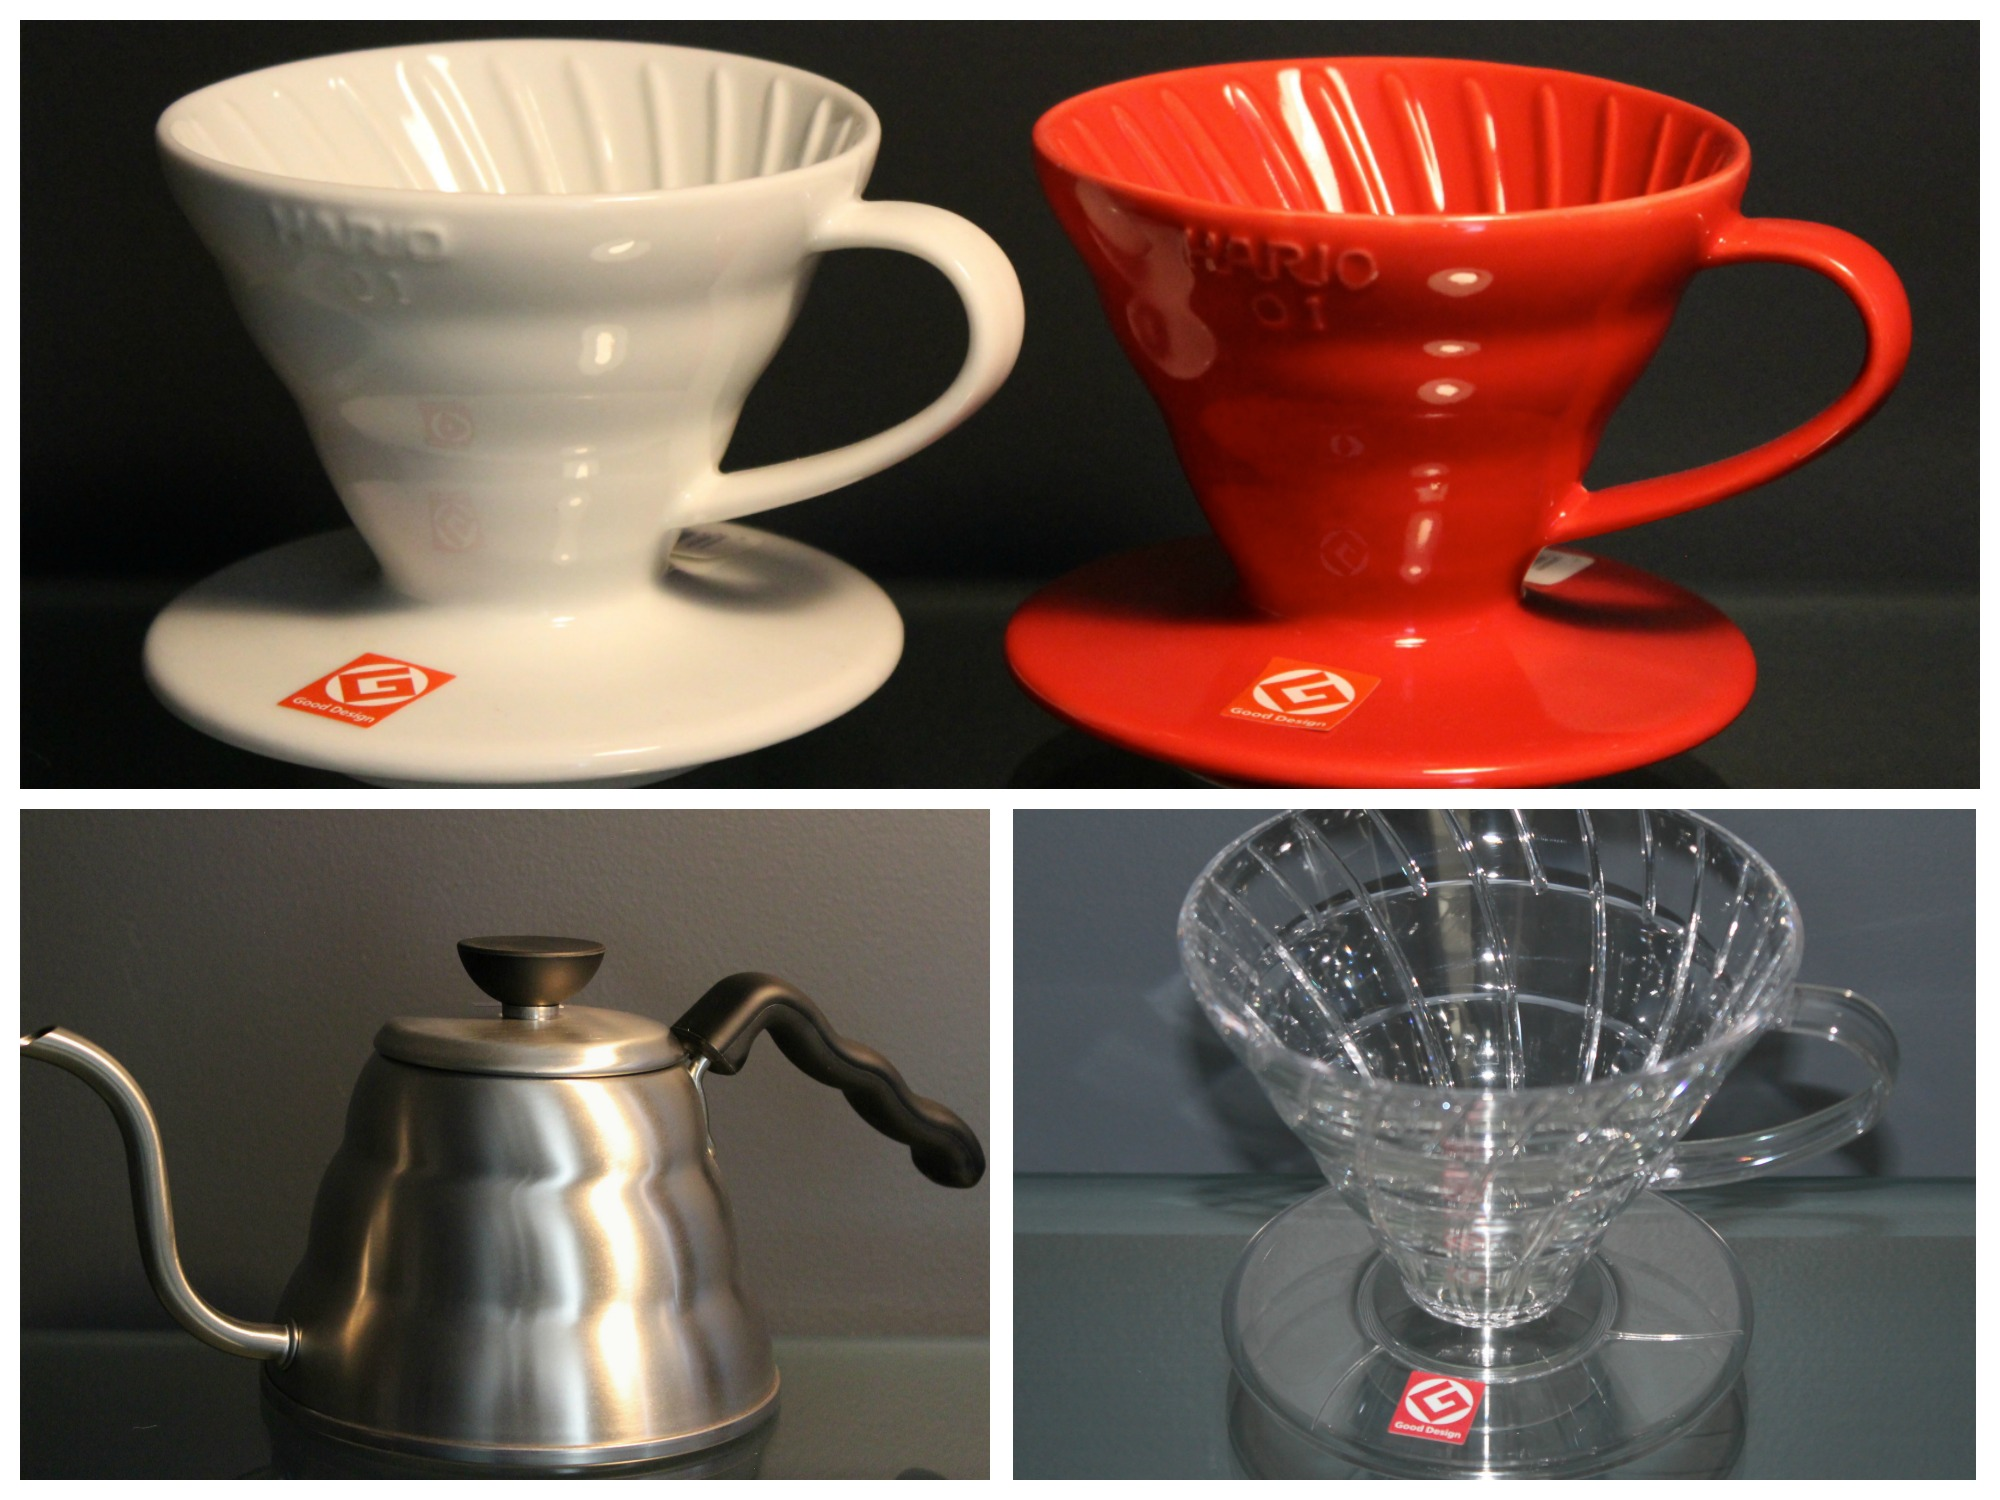 Hario V60 Drippers and Buono Drip Kettle